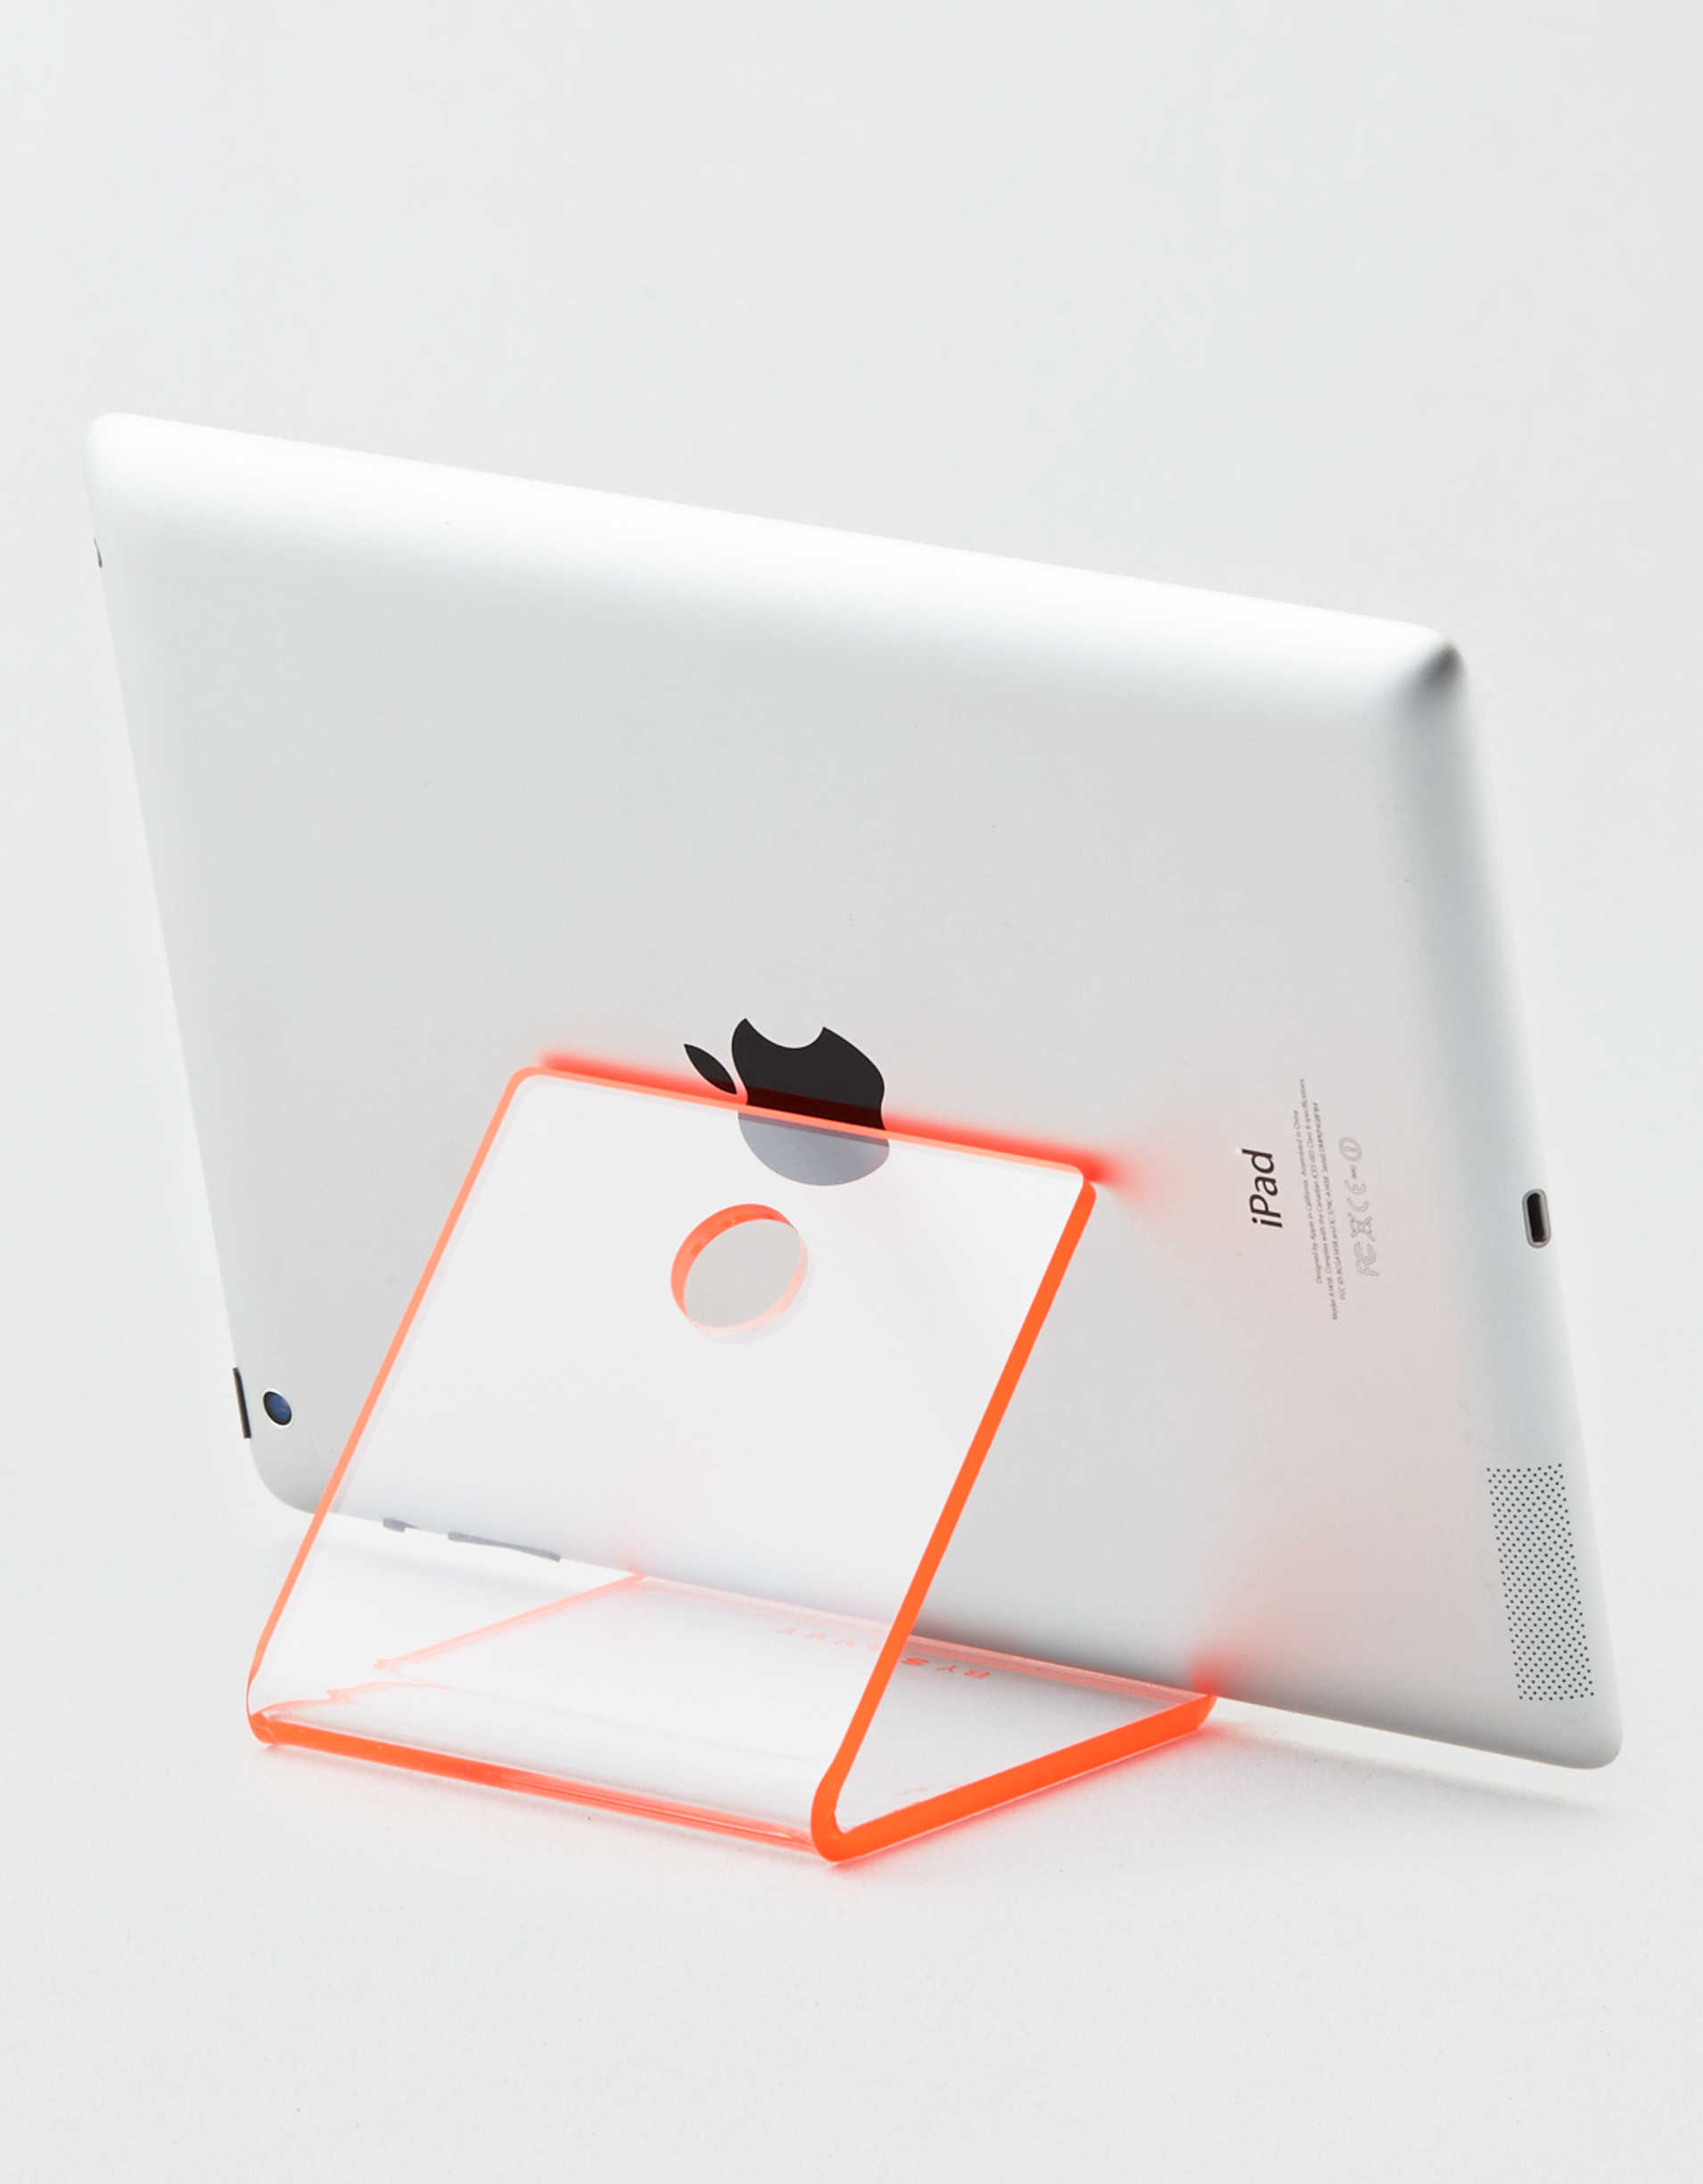 Lund London Neon Me Tablet Stand